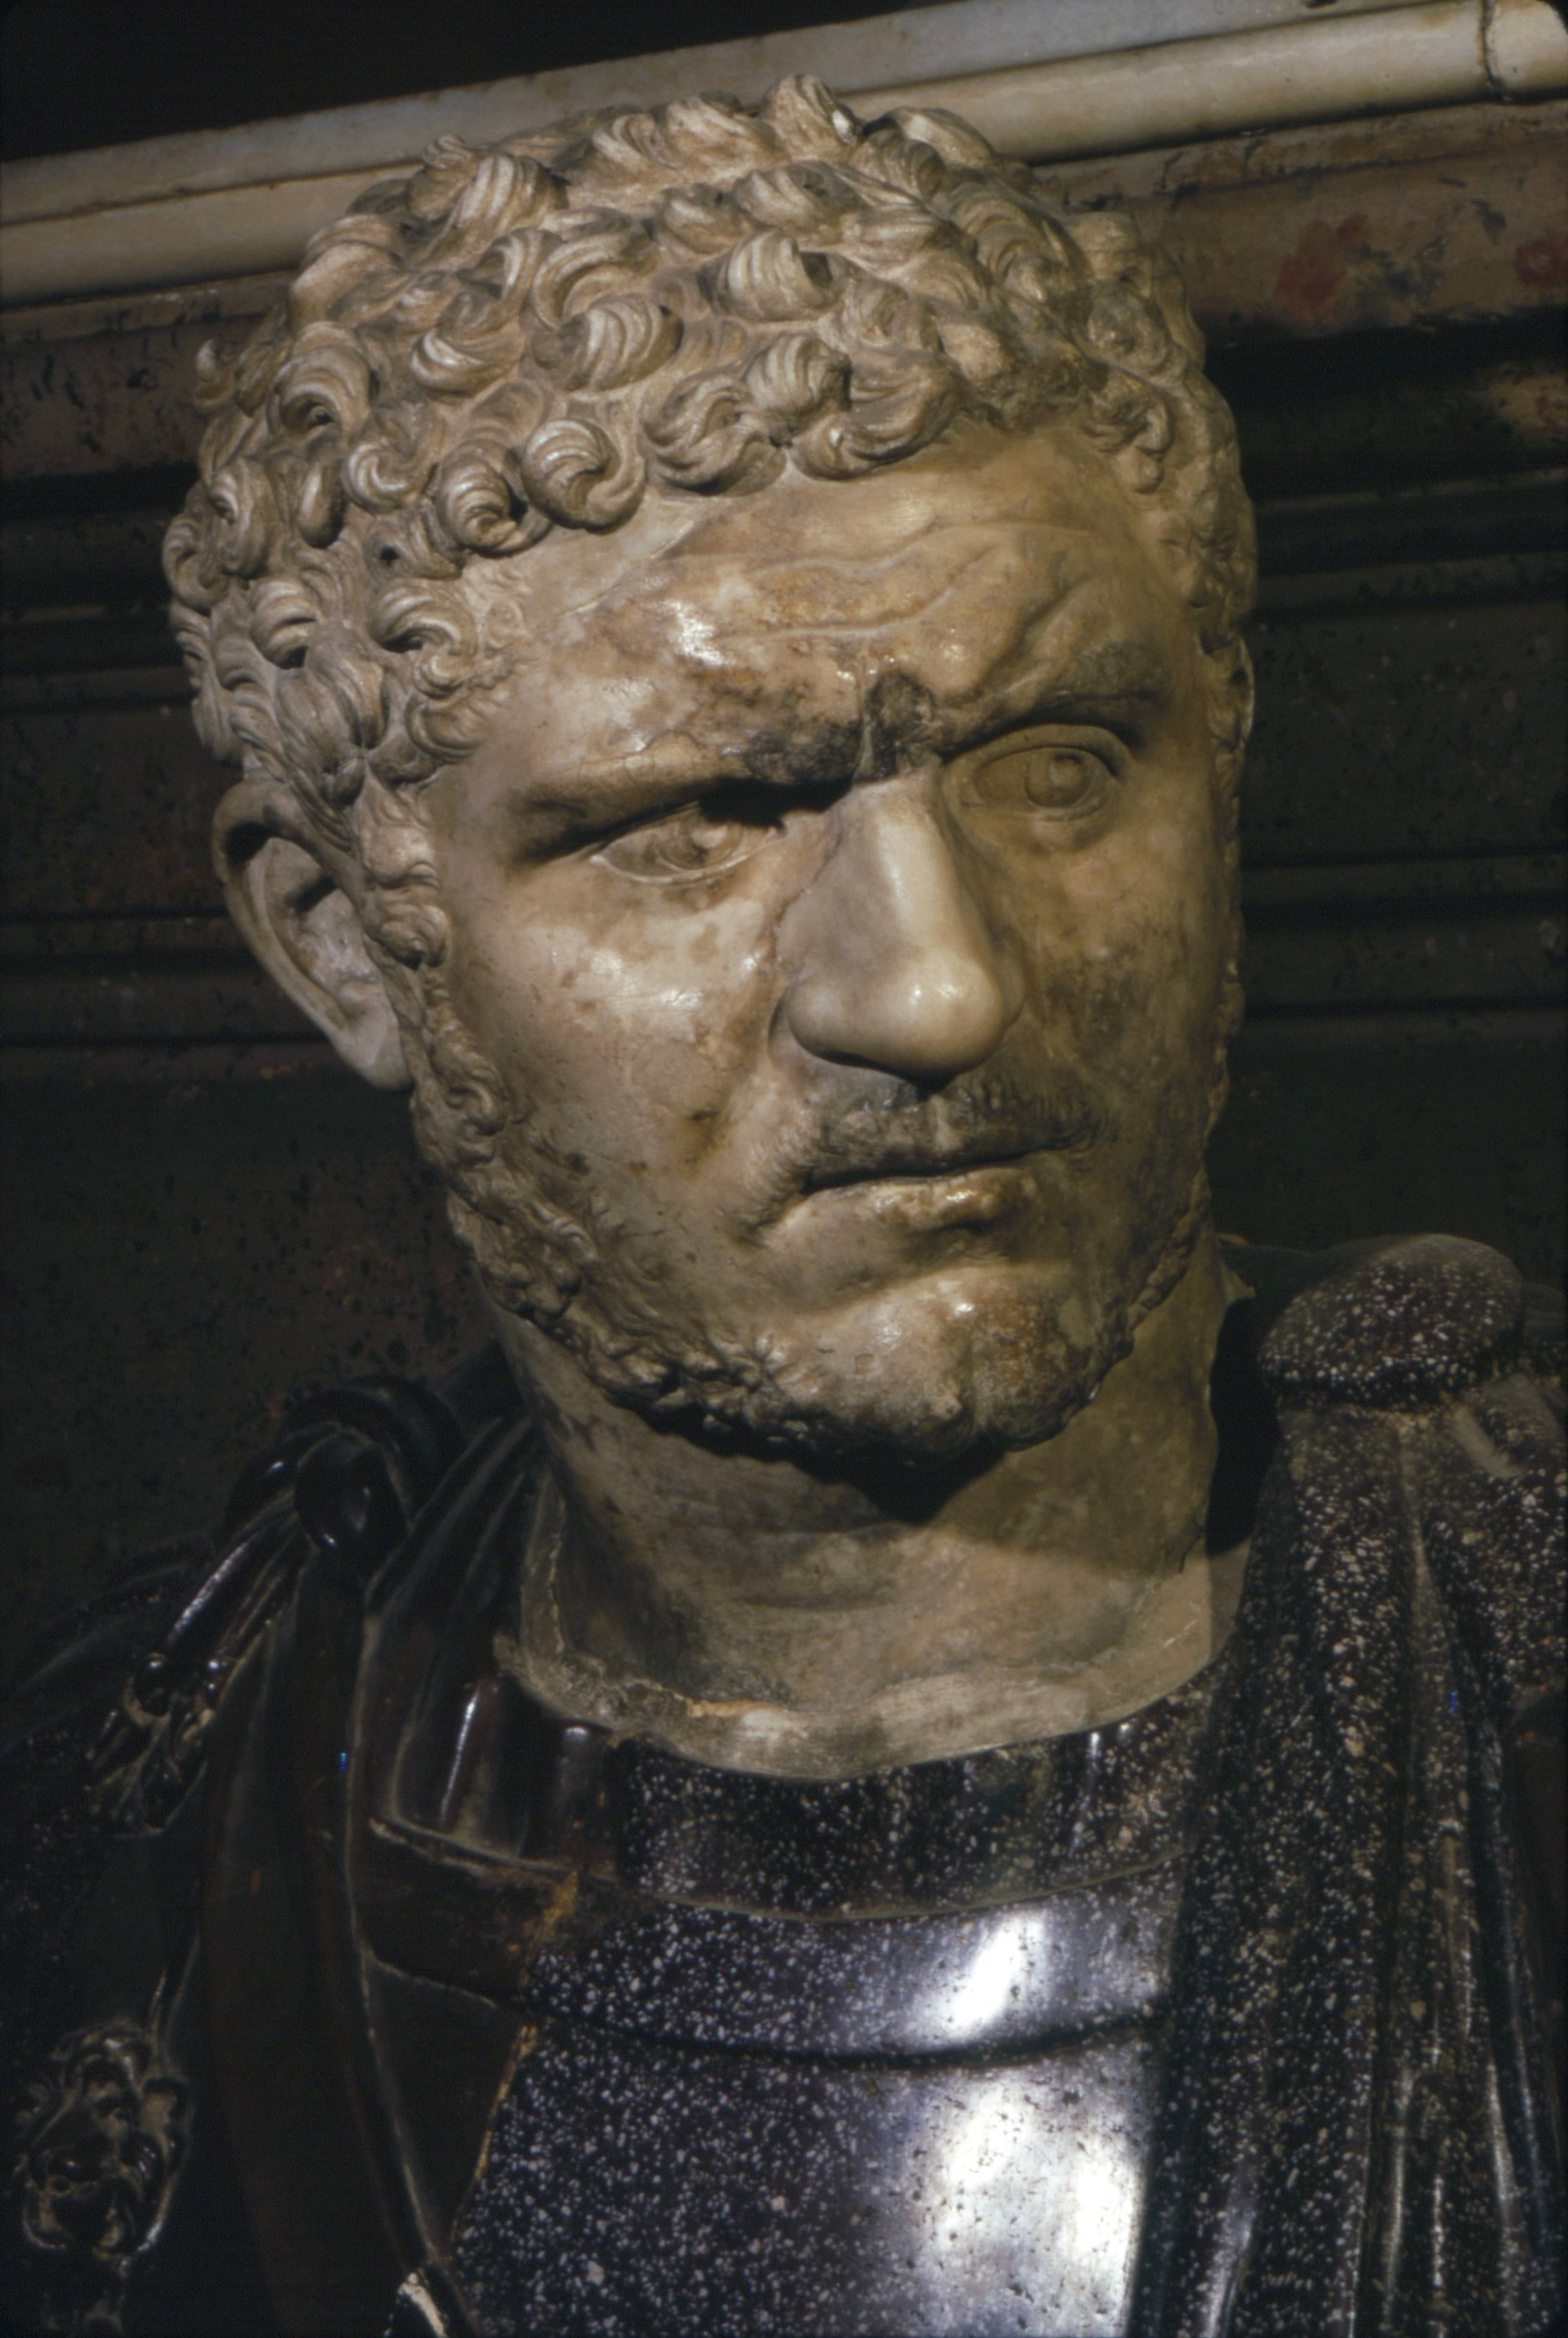 Ancient marble bust of Emperor Caracalla, 212-217. In the collections of the Capitoline Museums, Rome.